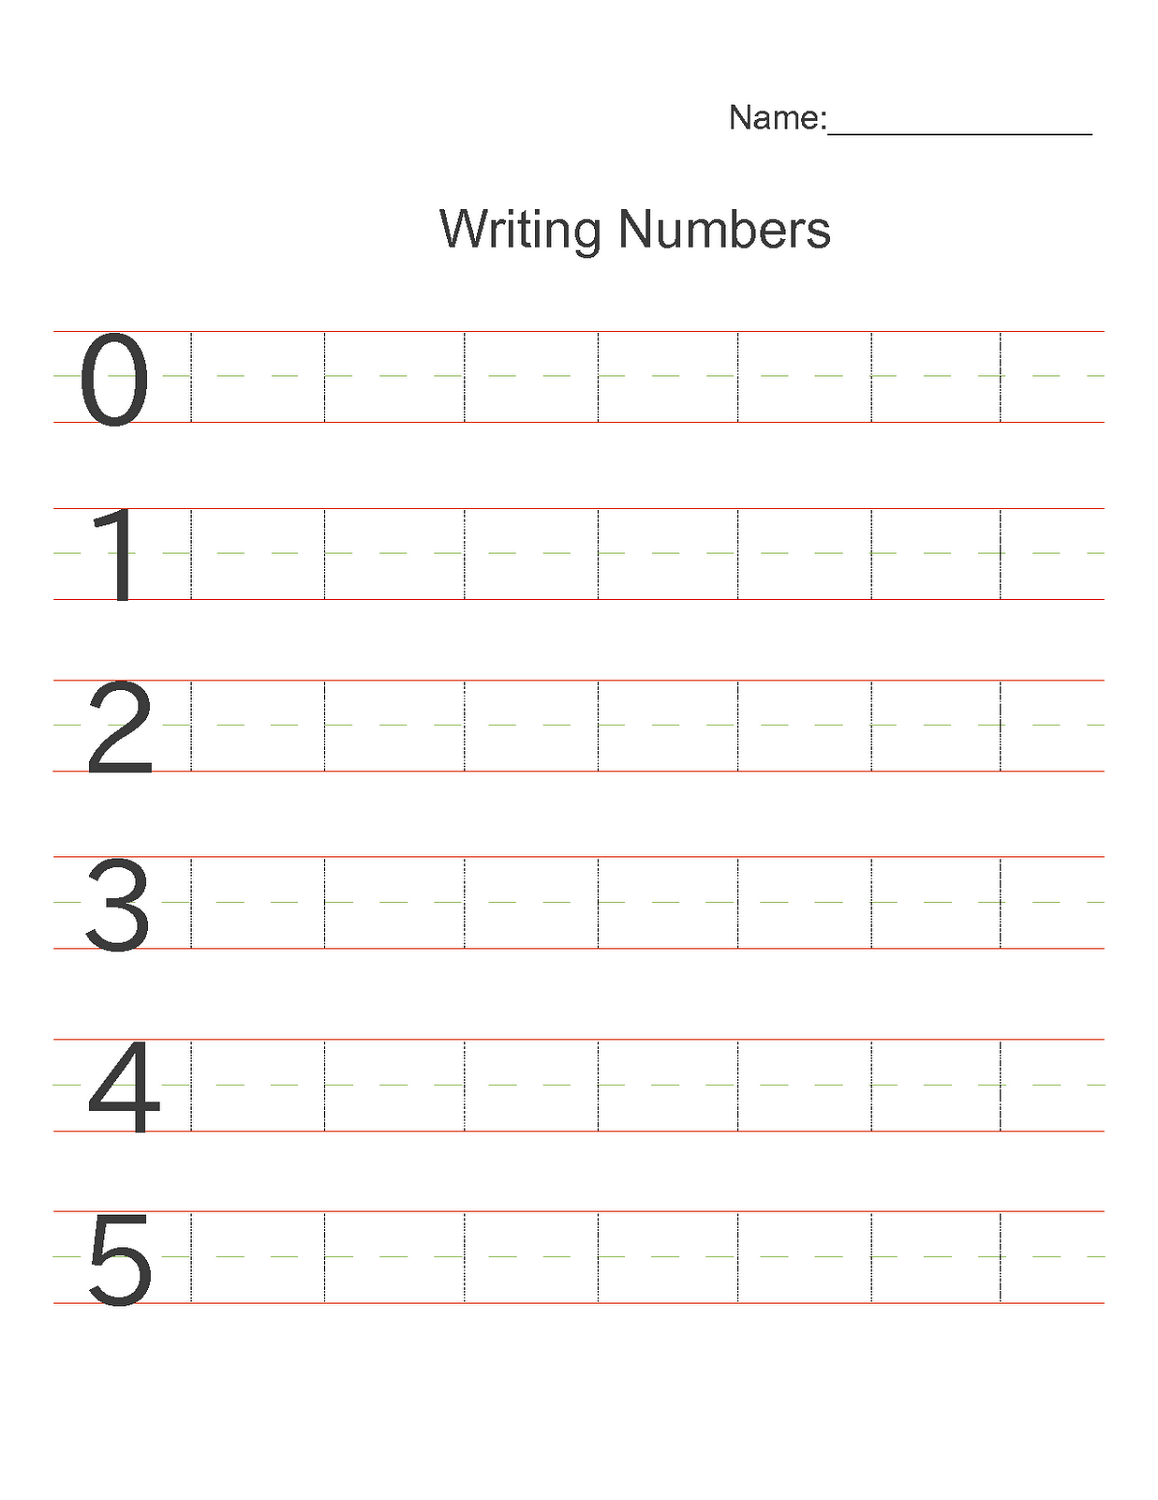 Writing Numbers Worksheets Printable